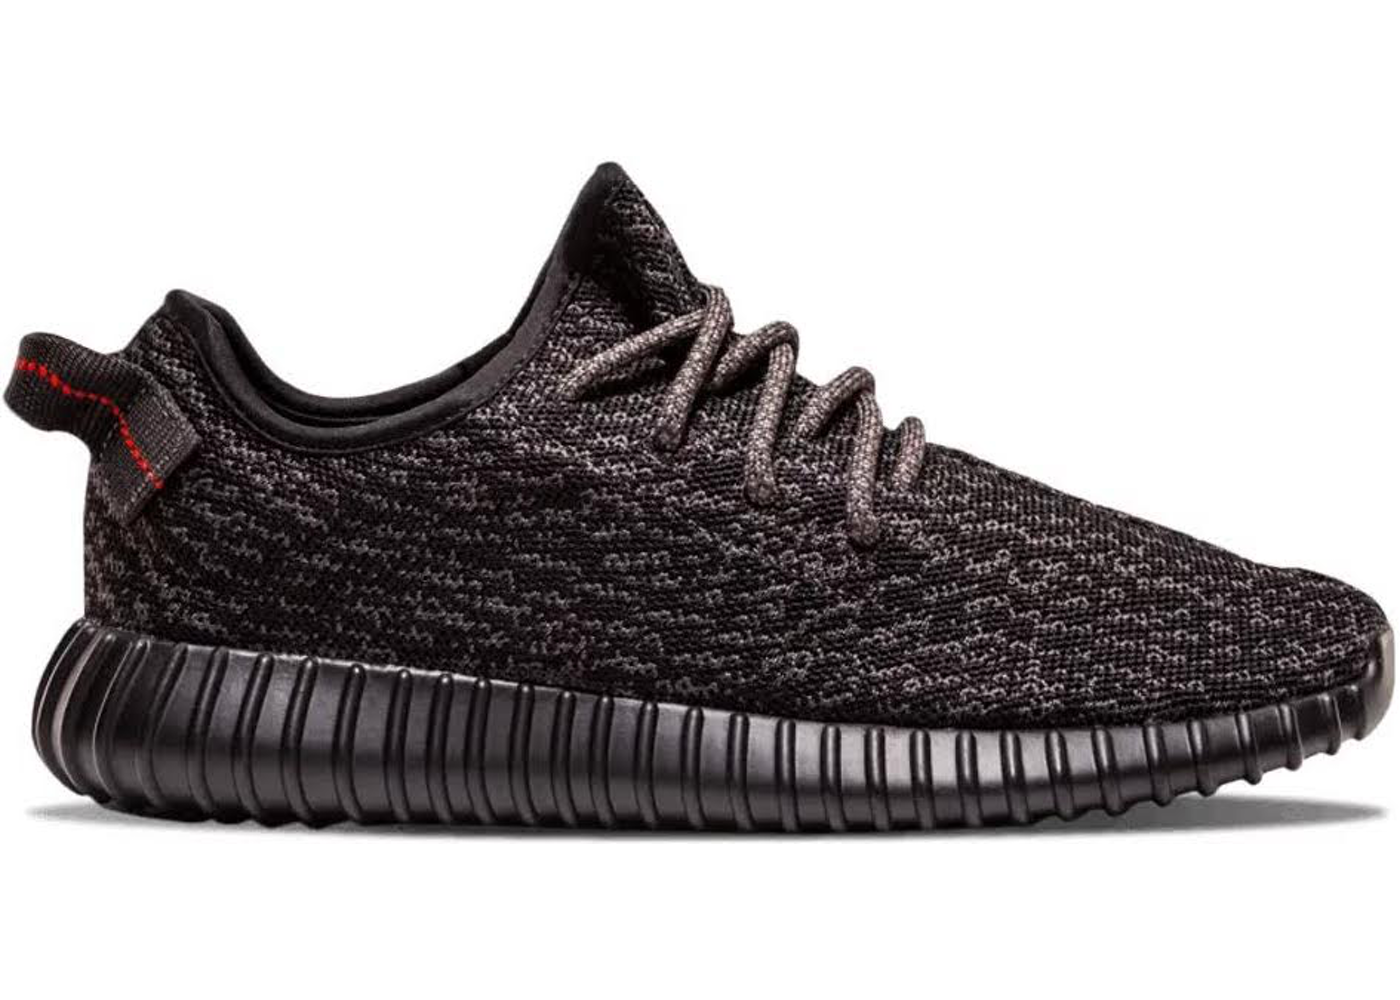 Adidas Yeezy Boost 350, 750, 950 / Nike Air Yeezy sports athletic shoes